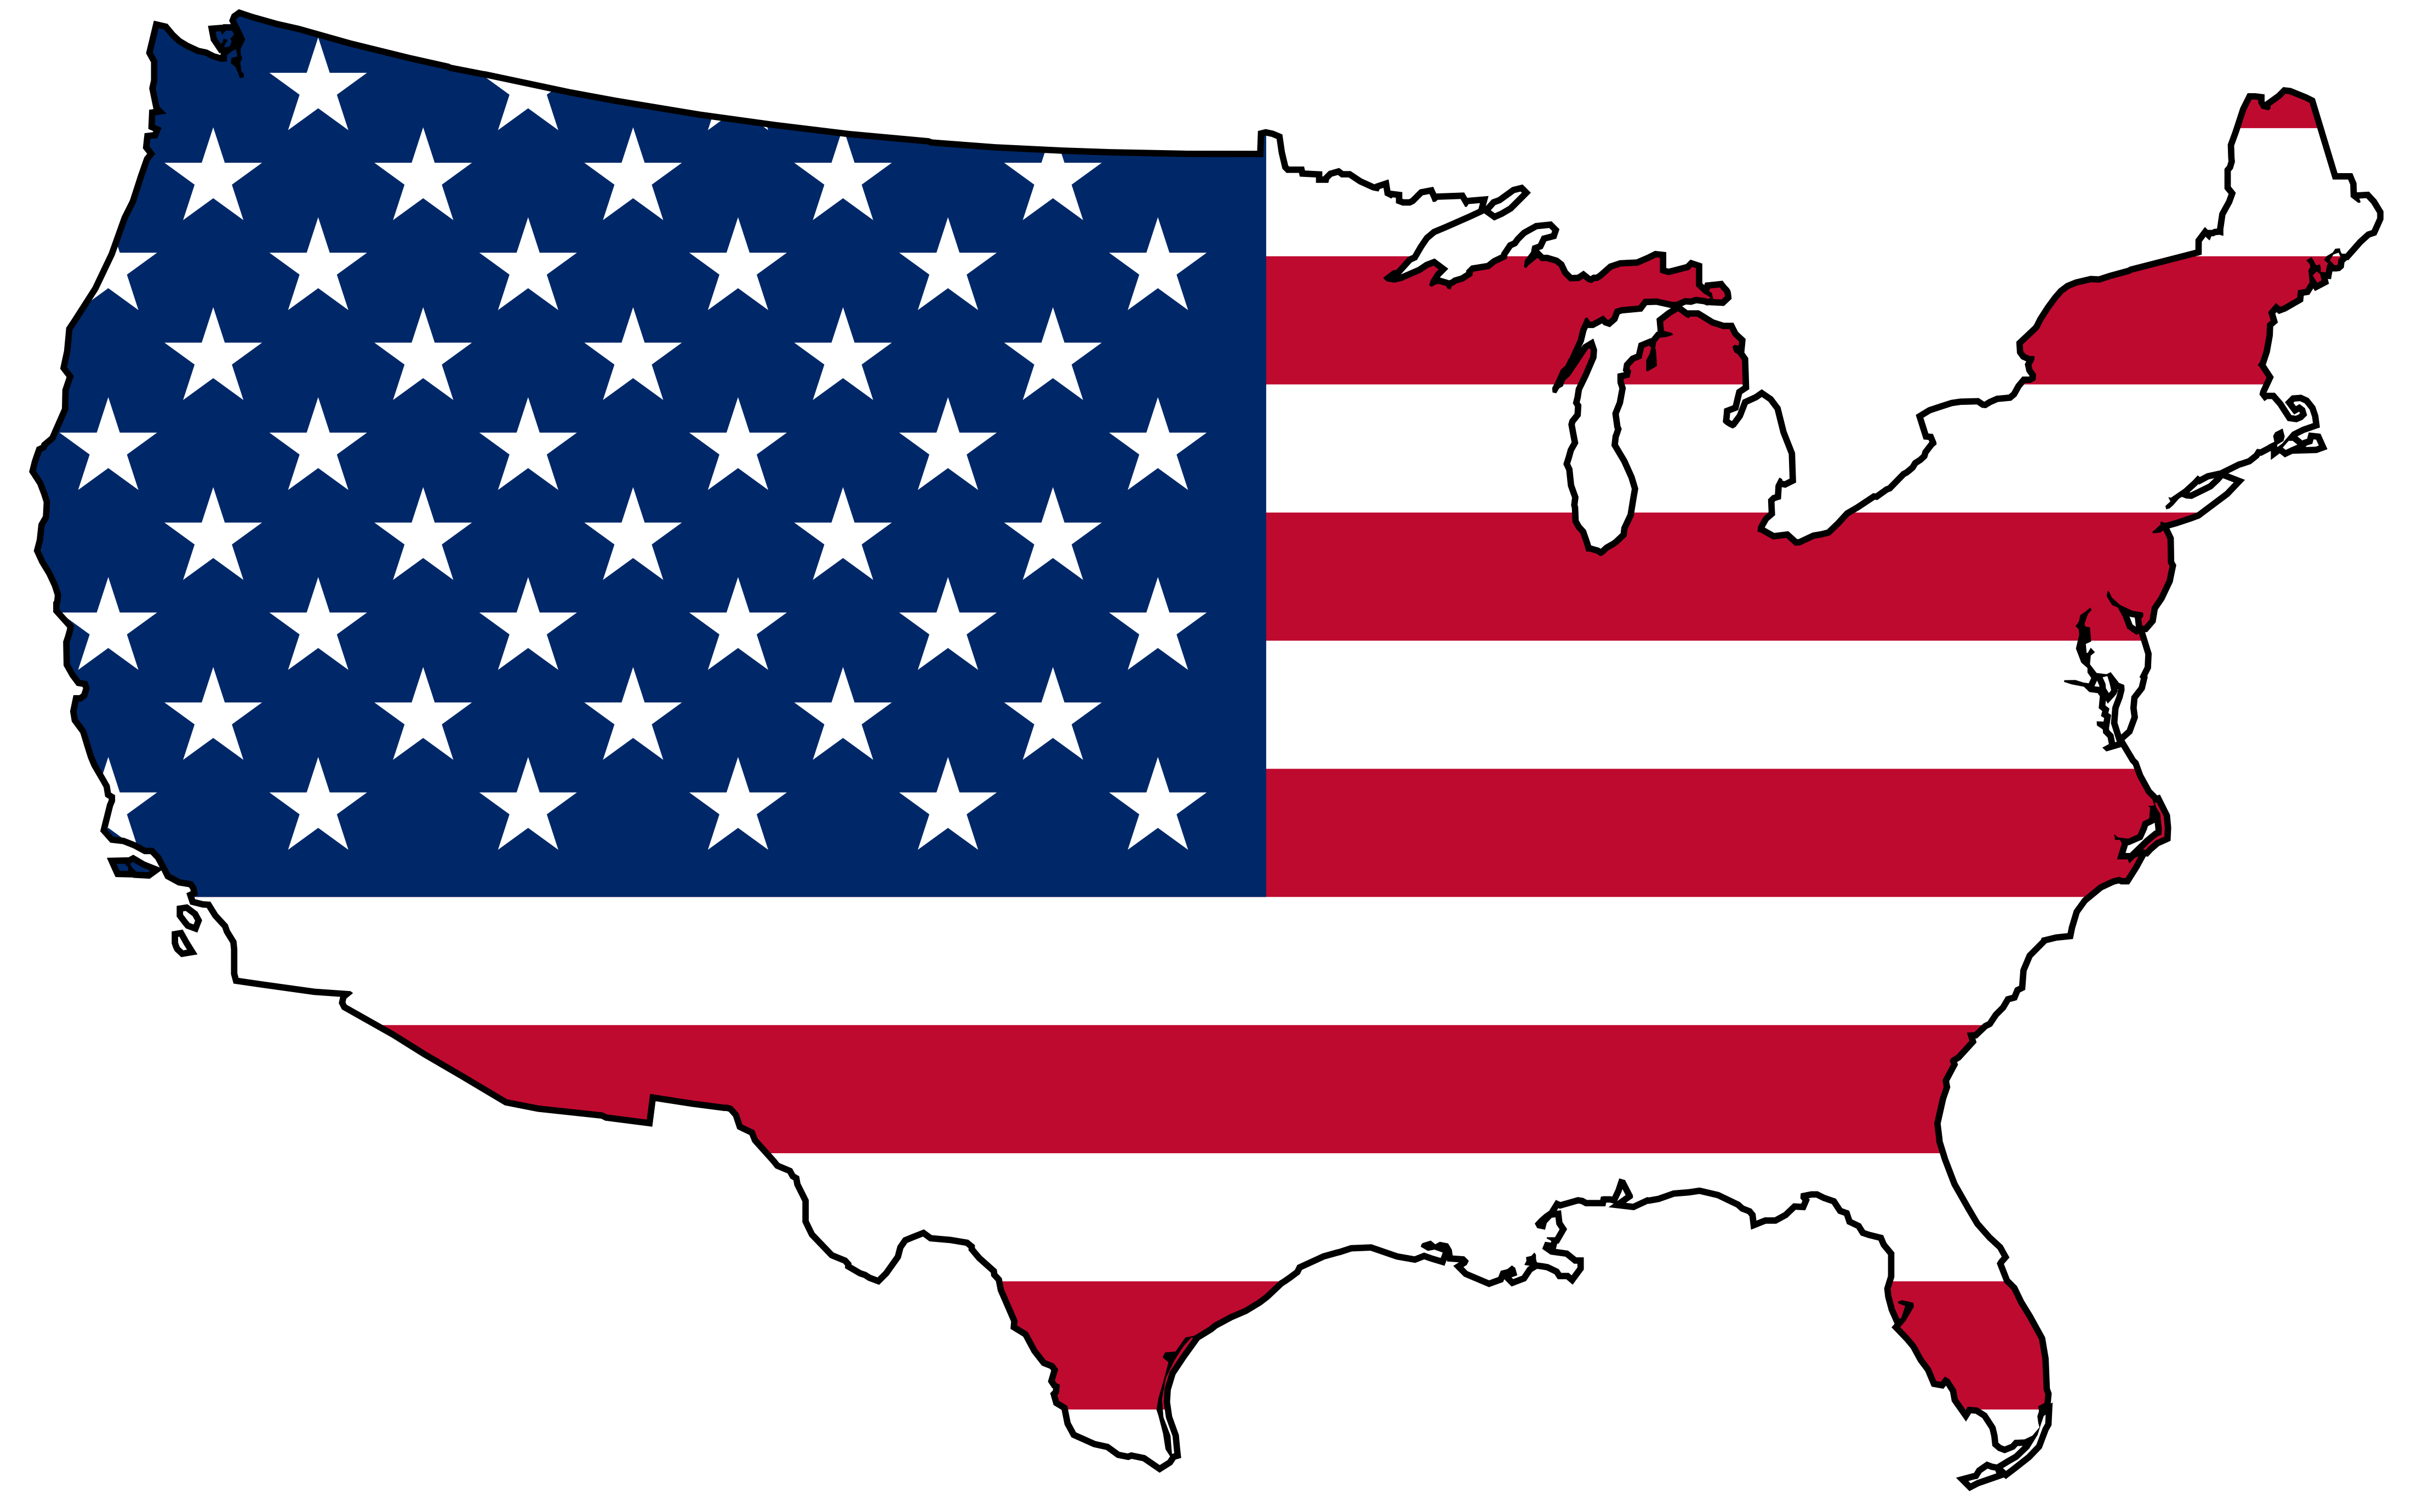 50 states clipart free jpg royalty free download United states clipart 50 state, United states 50 state Transparent ... jpg royalty free download